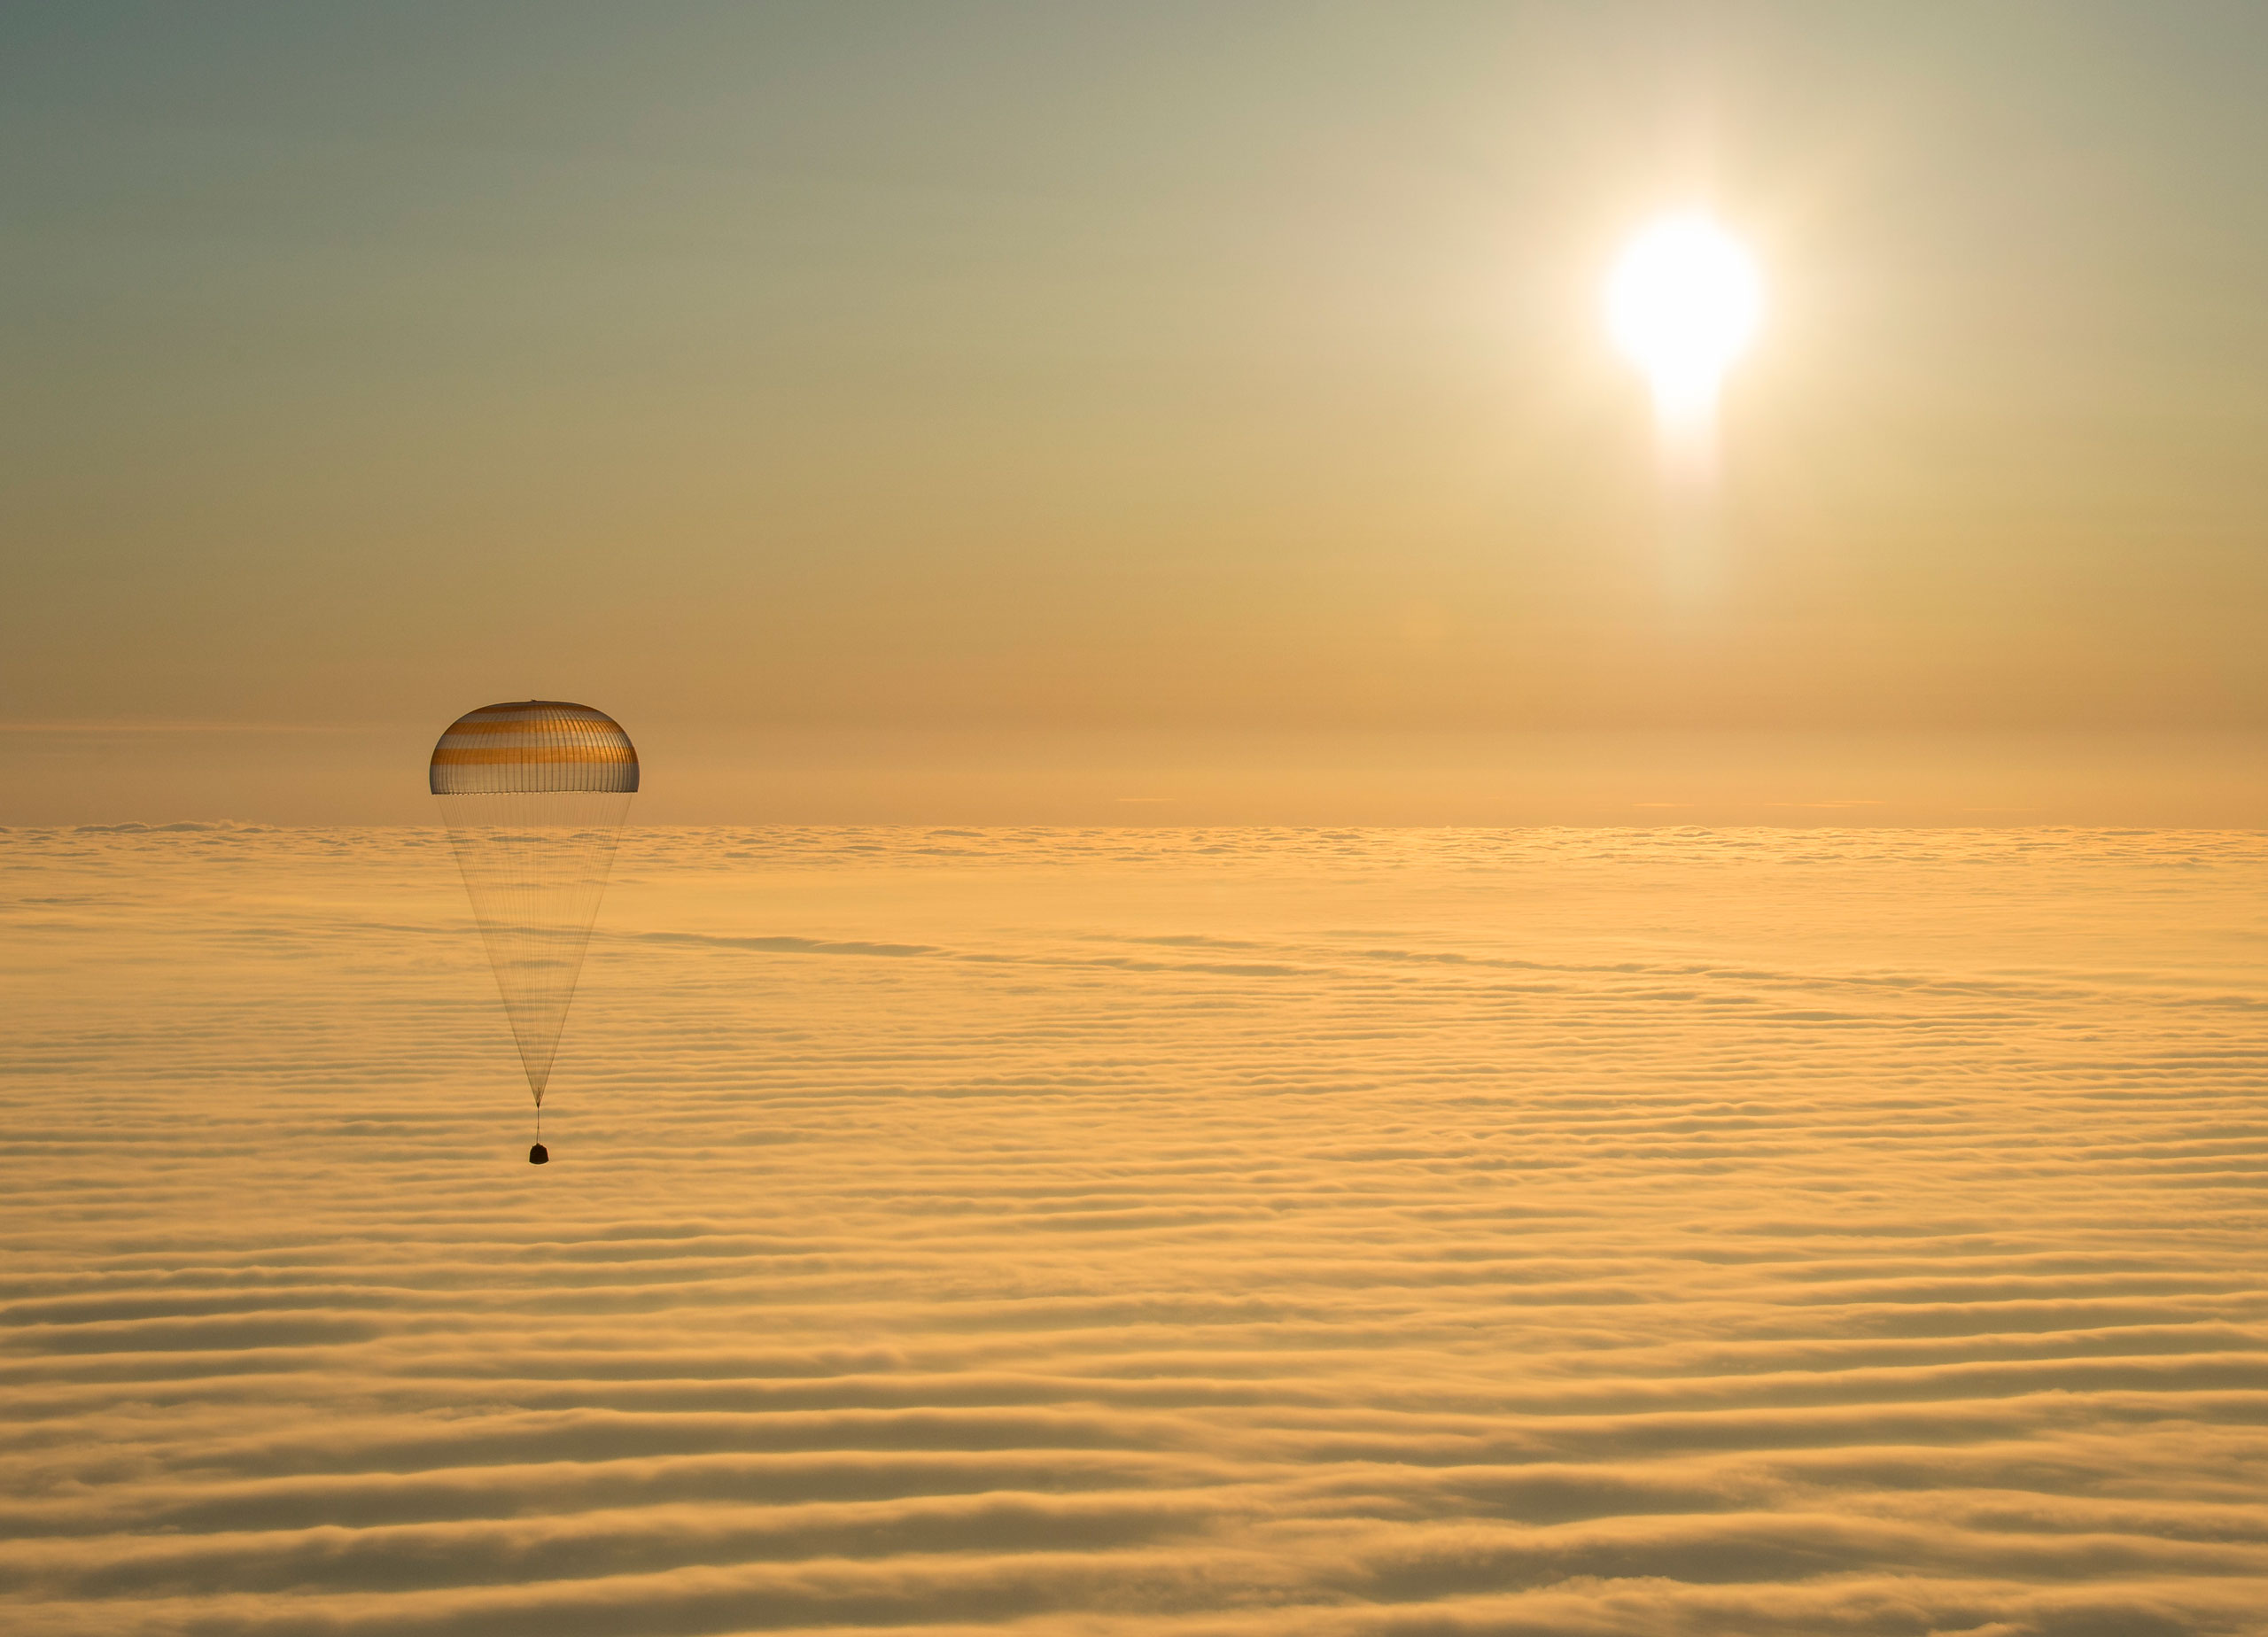 The Soyuz TMA-14M spacecraft as it lands with Expedition 42 commander Barry Wilmore of NASA, Alexander Samokutyaev of the Russian Federal Space Agency (Roscosmos) and Elena Serova of Roscosmos near the town of Zhezkazgan, Kazakhstan on March 12, 2015.